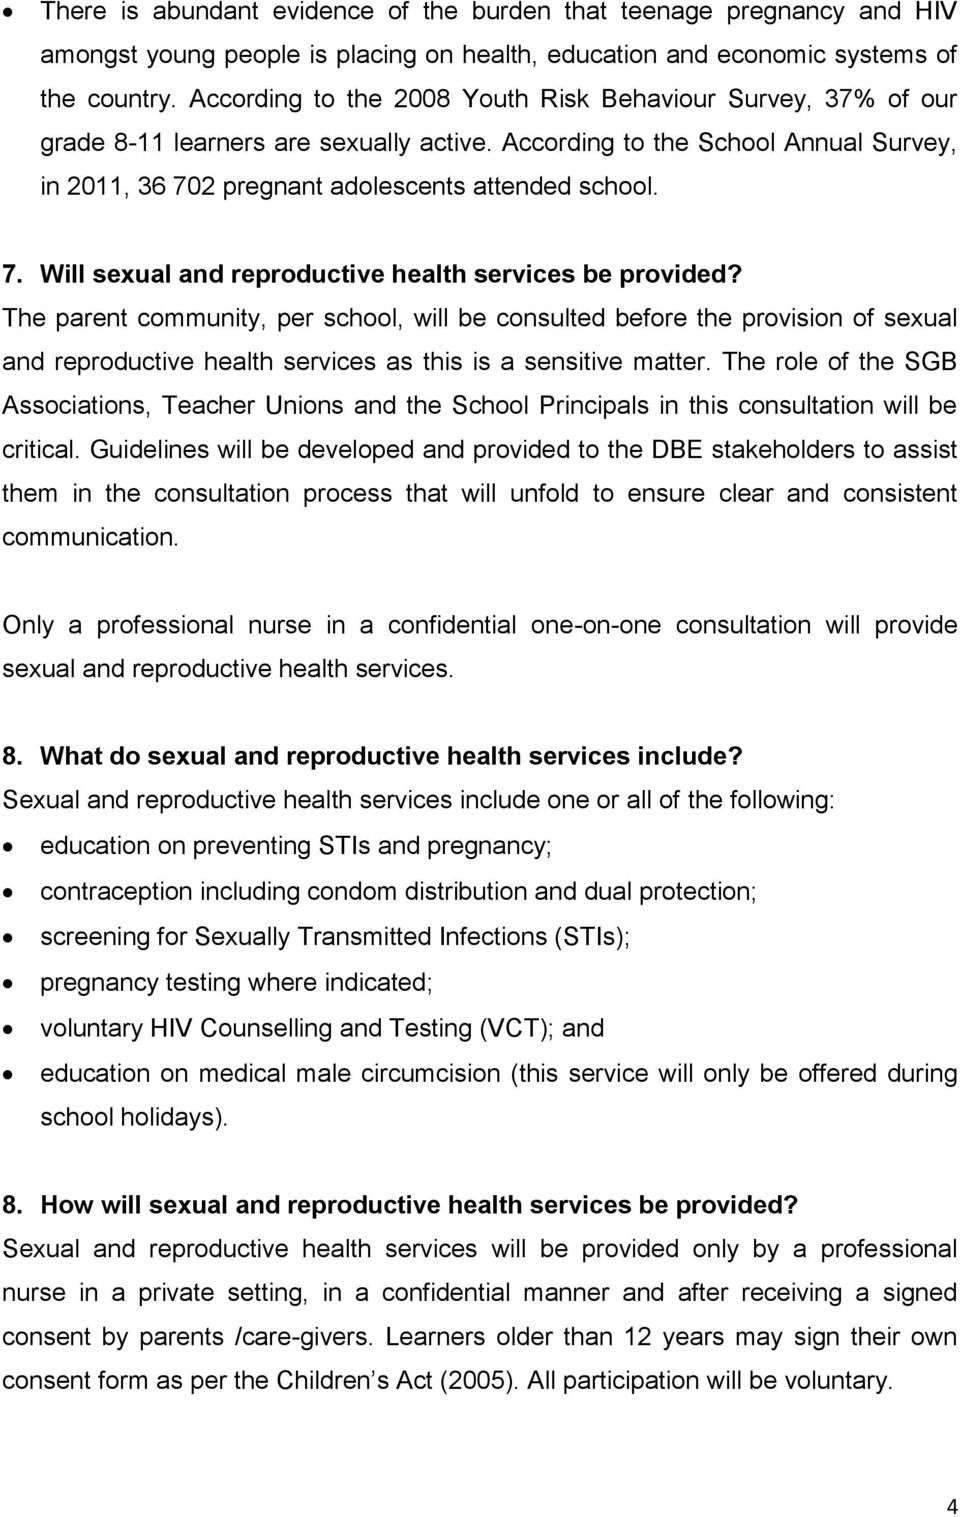 2 pregnant adolescents attended school. 7. Will sexual and reproductive health services be provided?